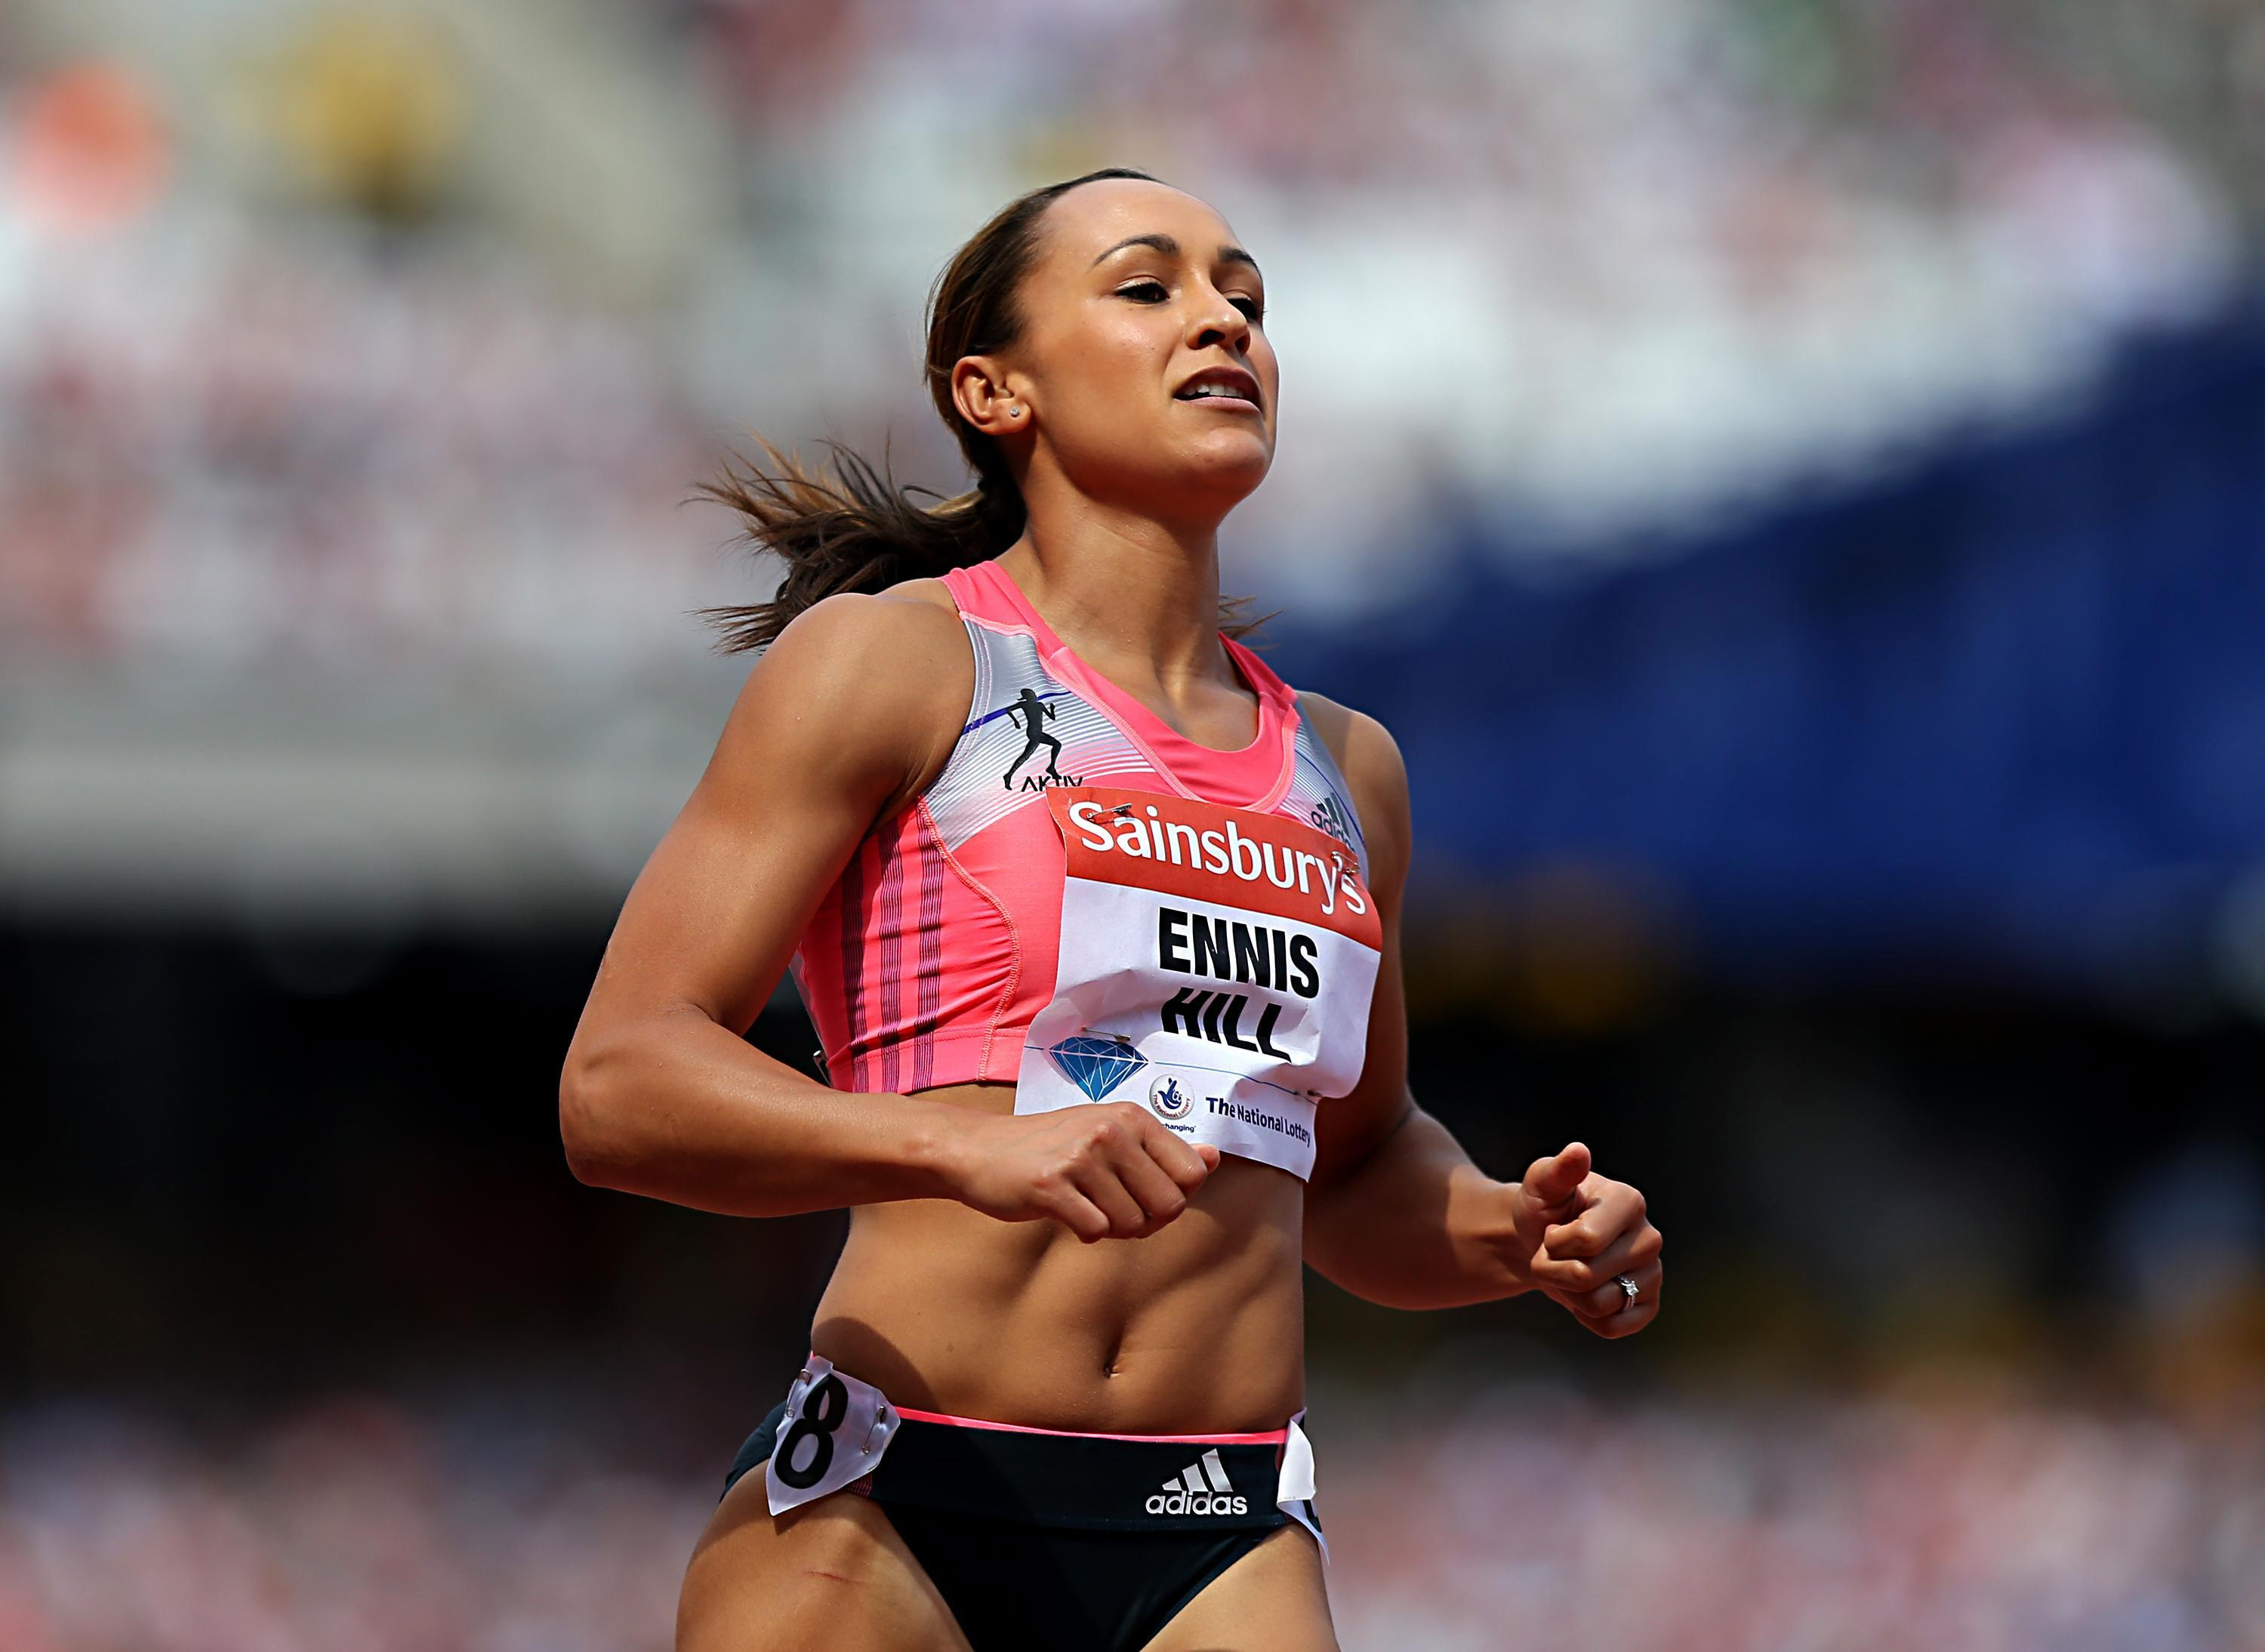 jessica ennis hill facing calls - HD 3000×2188